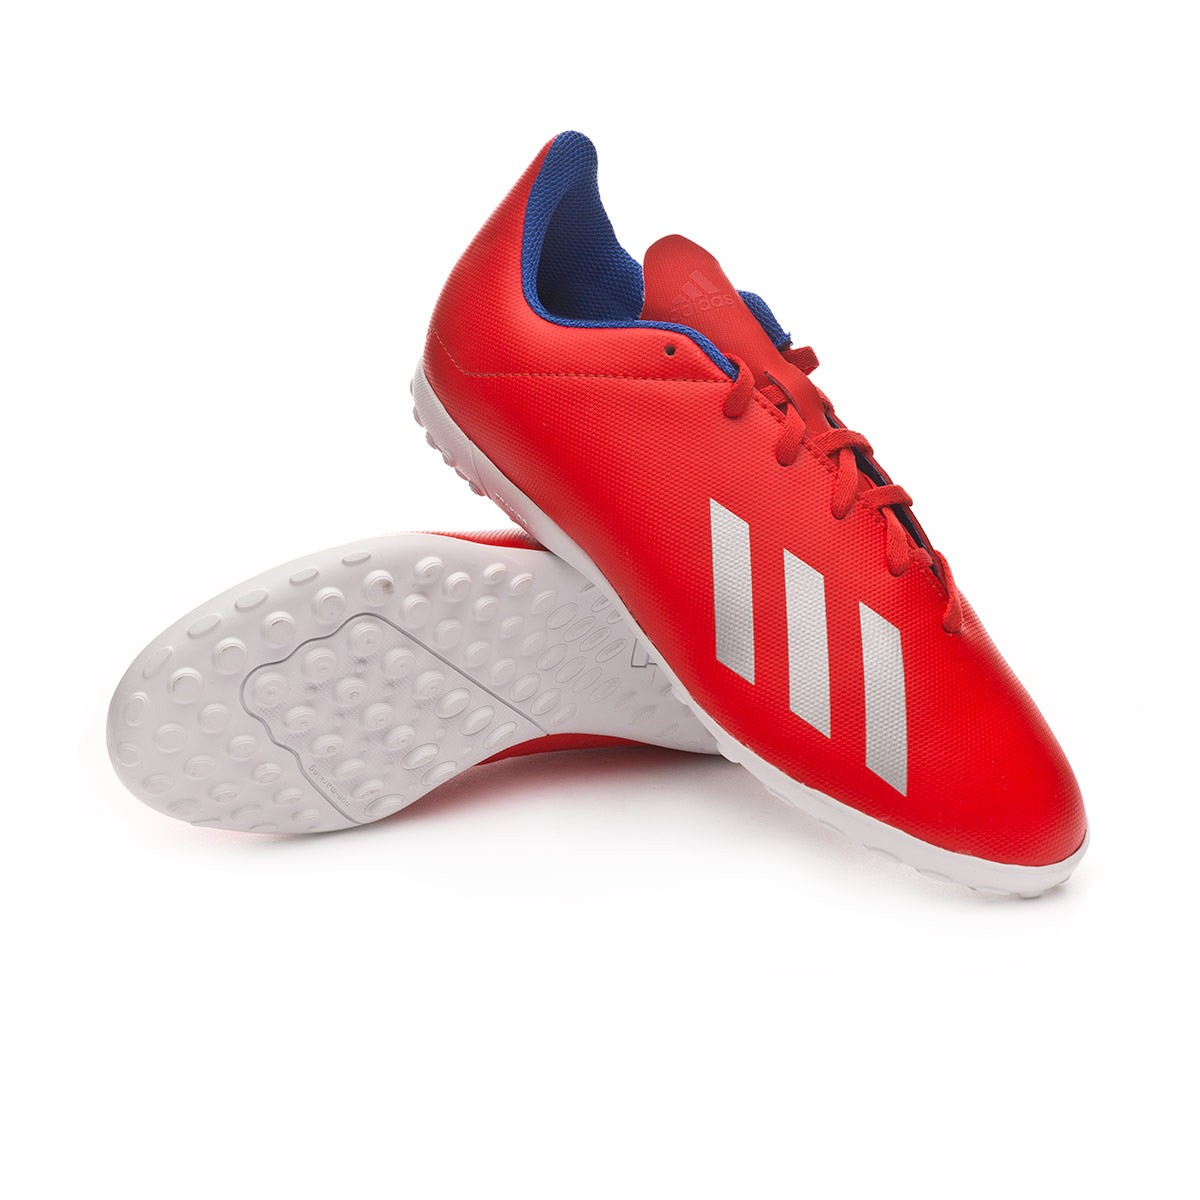 6d27d7a6b Football Boot adidas X Tango 18.4 Turf Niño Active red-Silver ...